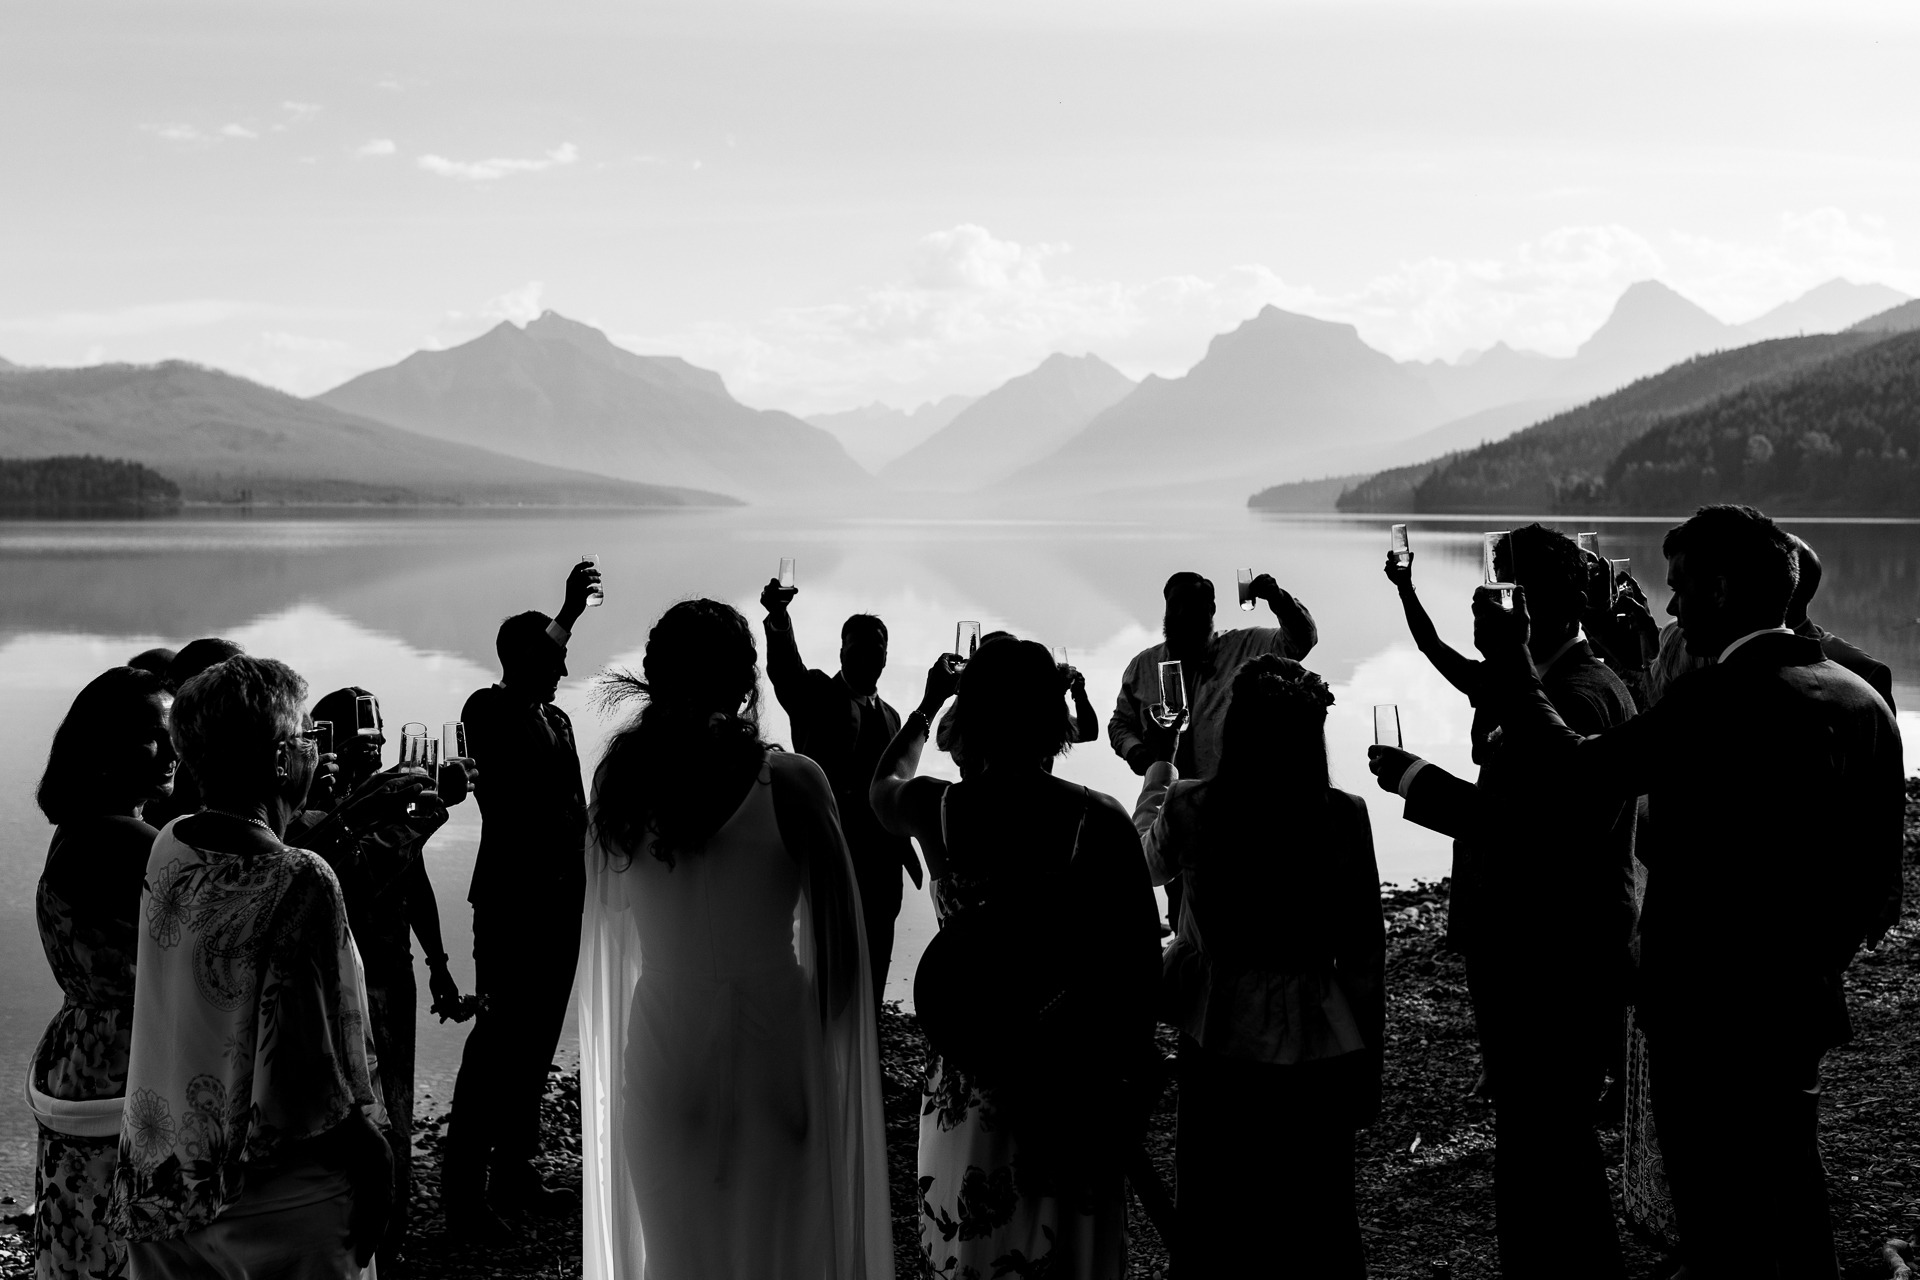 David Clumpner, of Montana, is a wedding photographer for Glacier Park, Montana